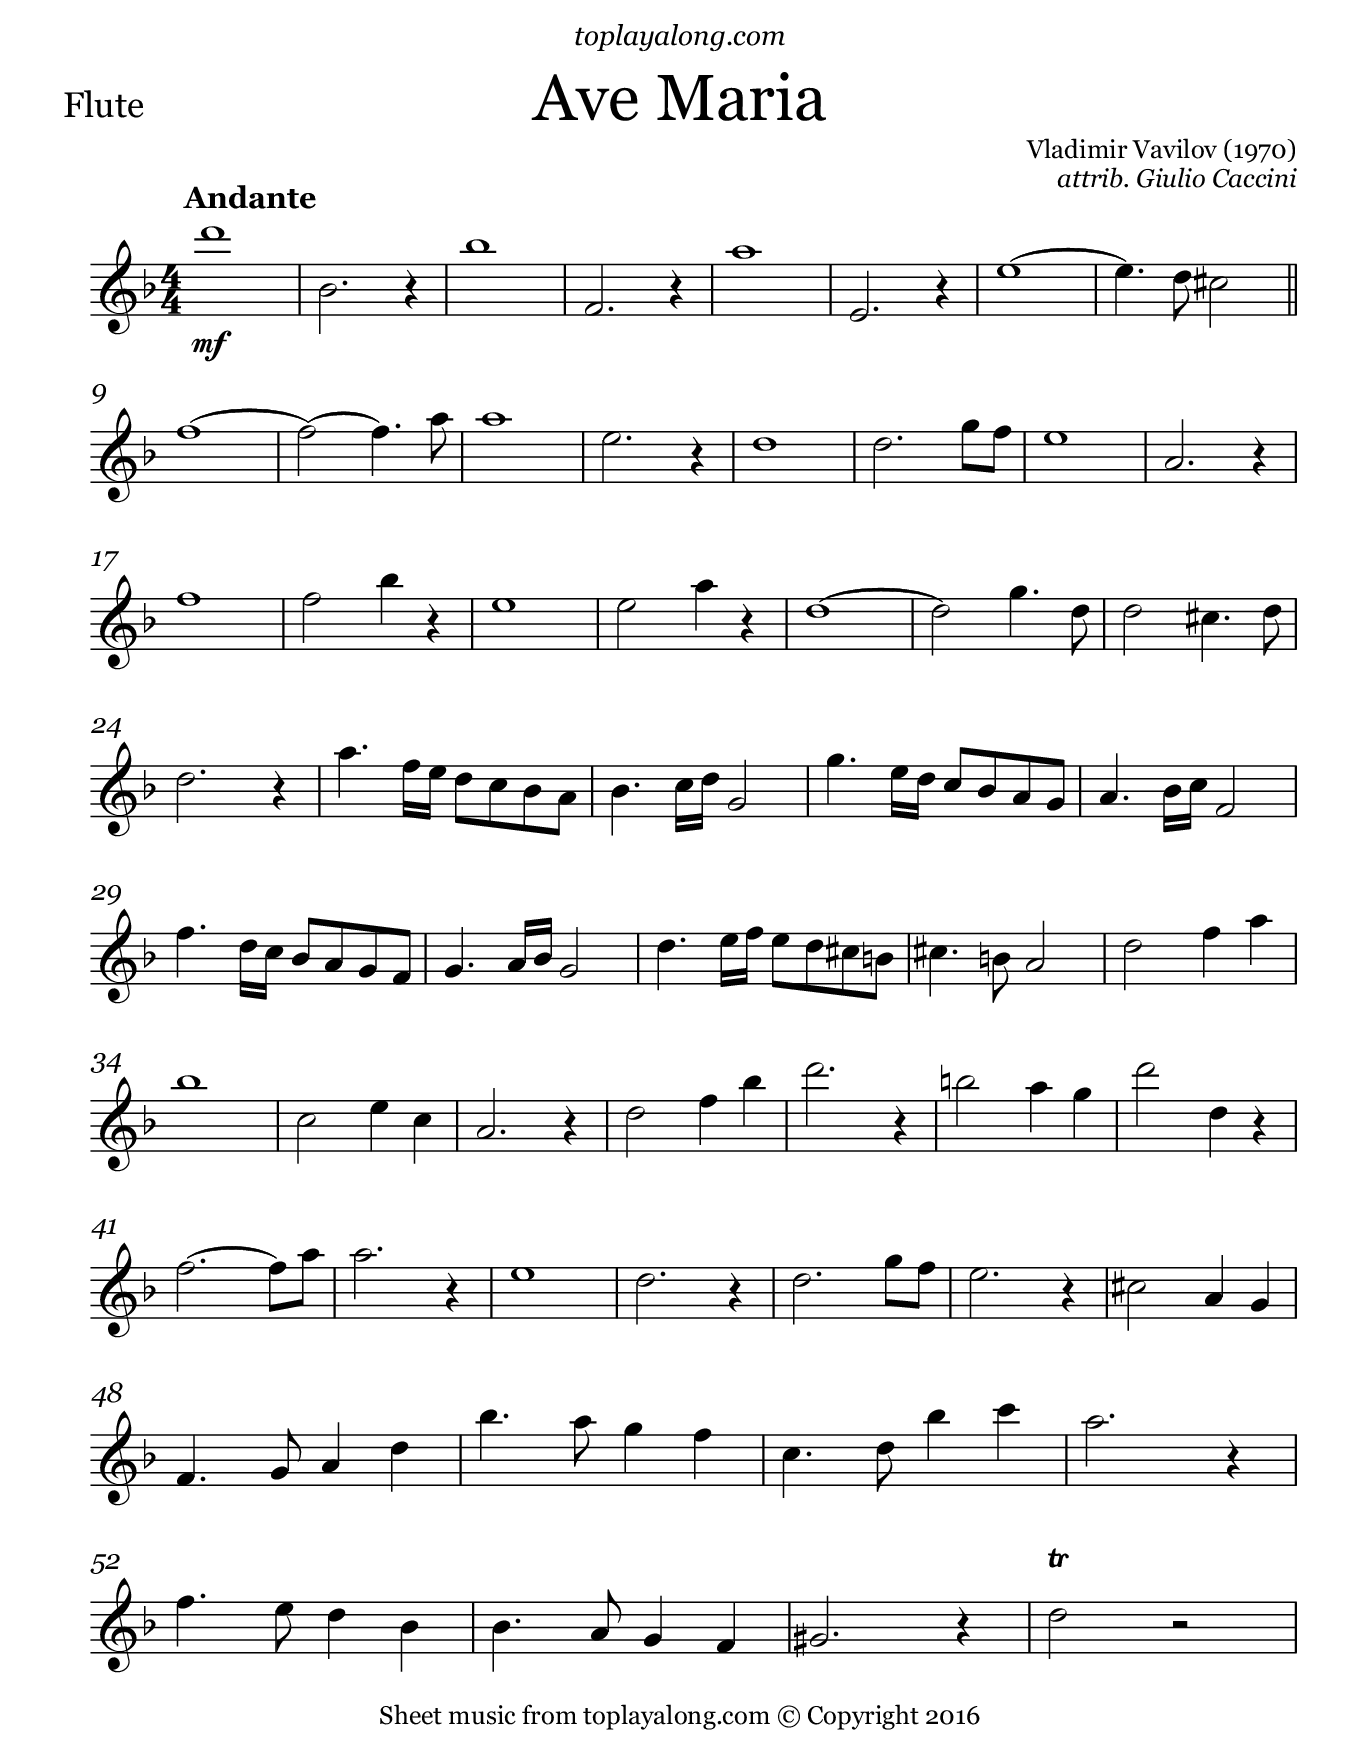 Ave Maria by Vavilov. Sheet music for Flute, page 1.